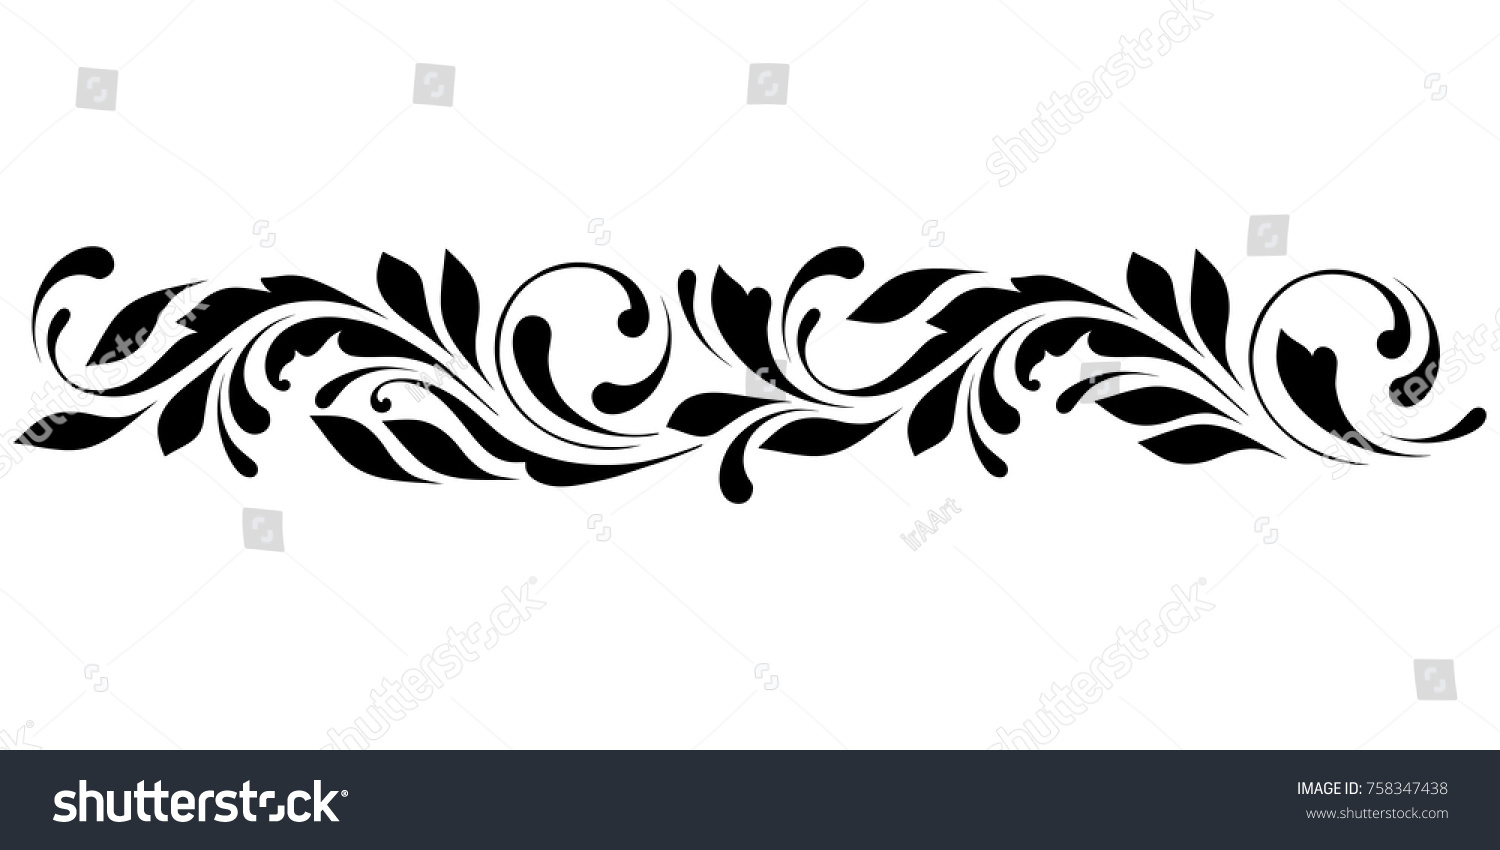 Outline Floral Pattern Ornamental Border Ribbons Stock Vector